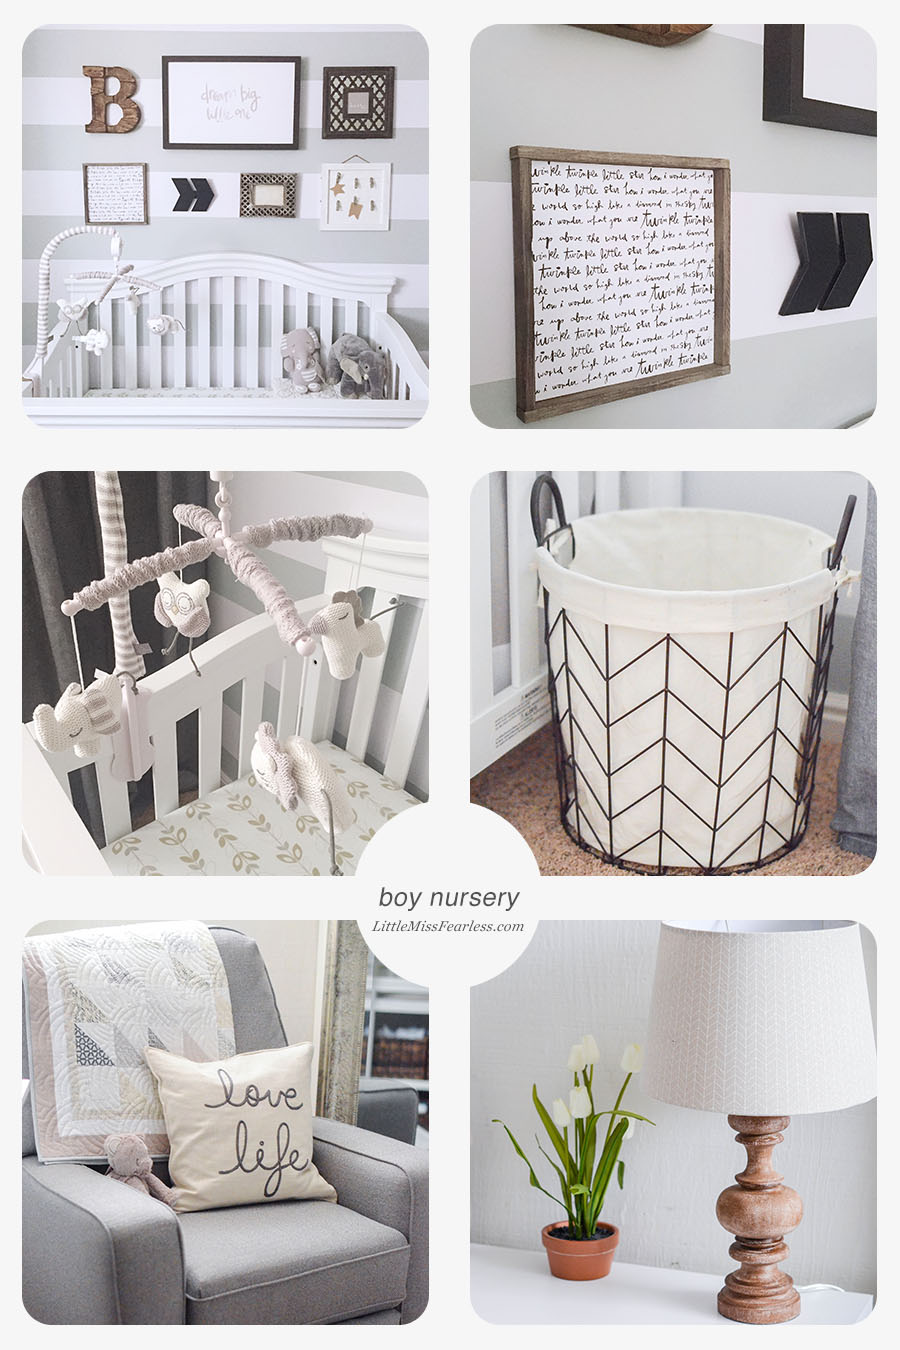 LittleMissFearless_baby-boy-nursery-1